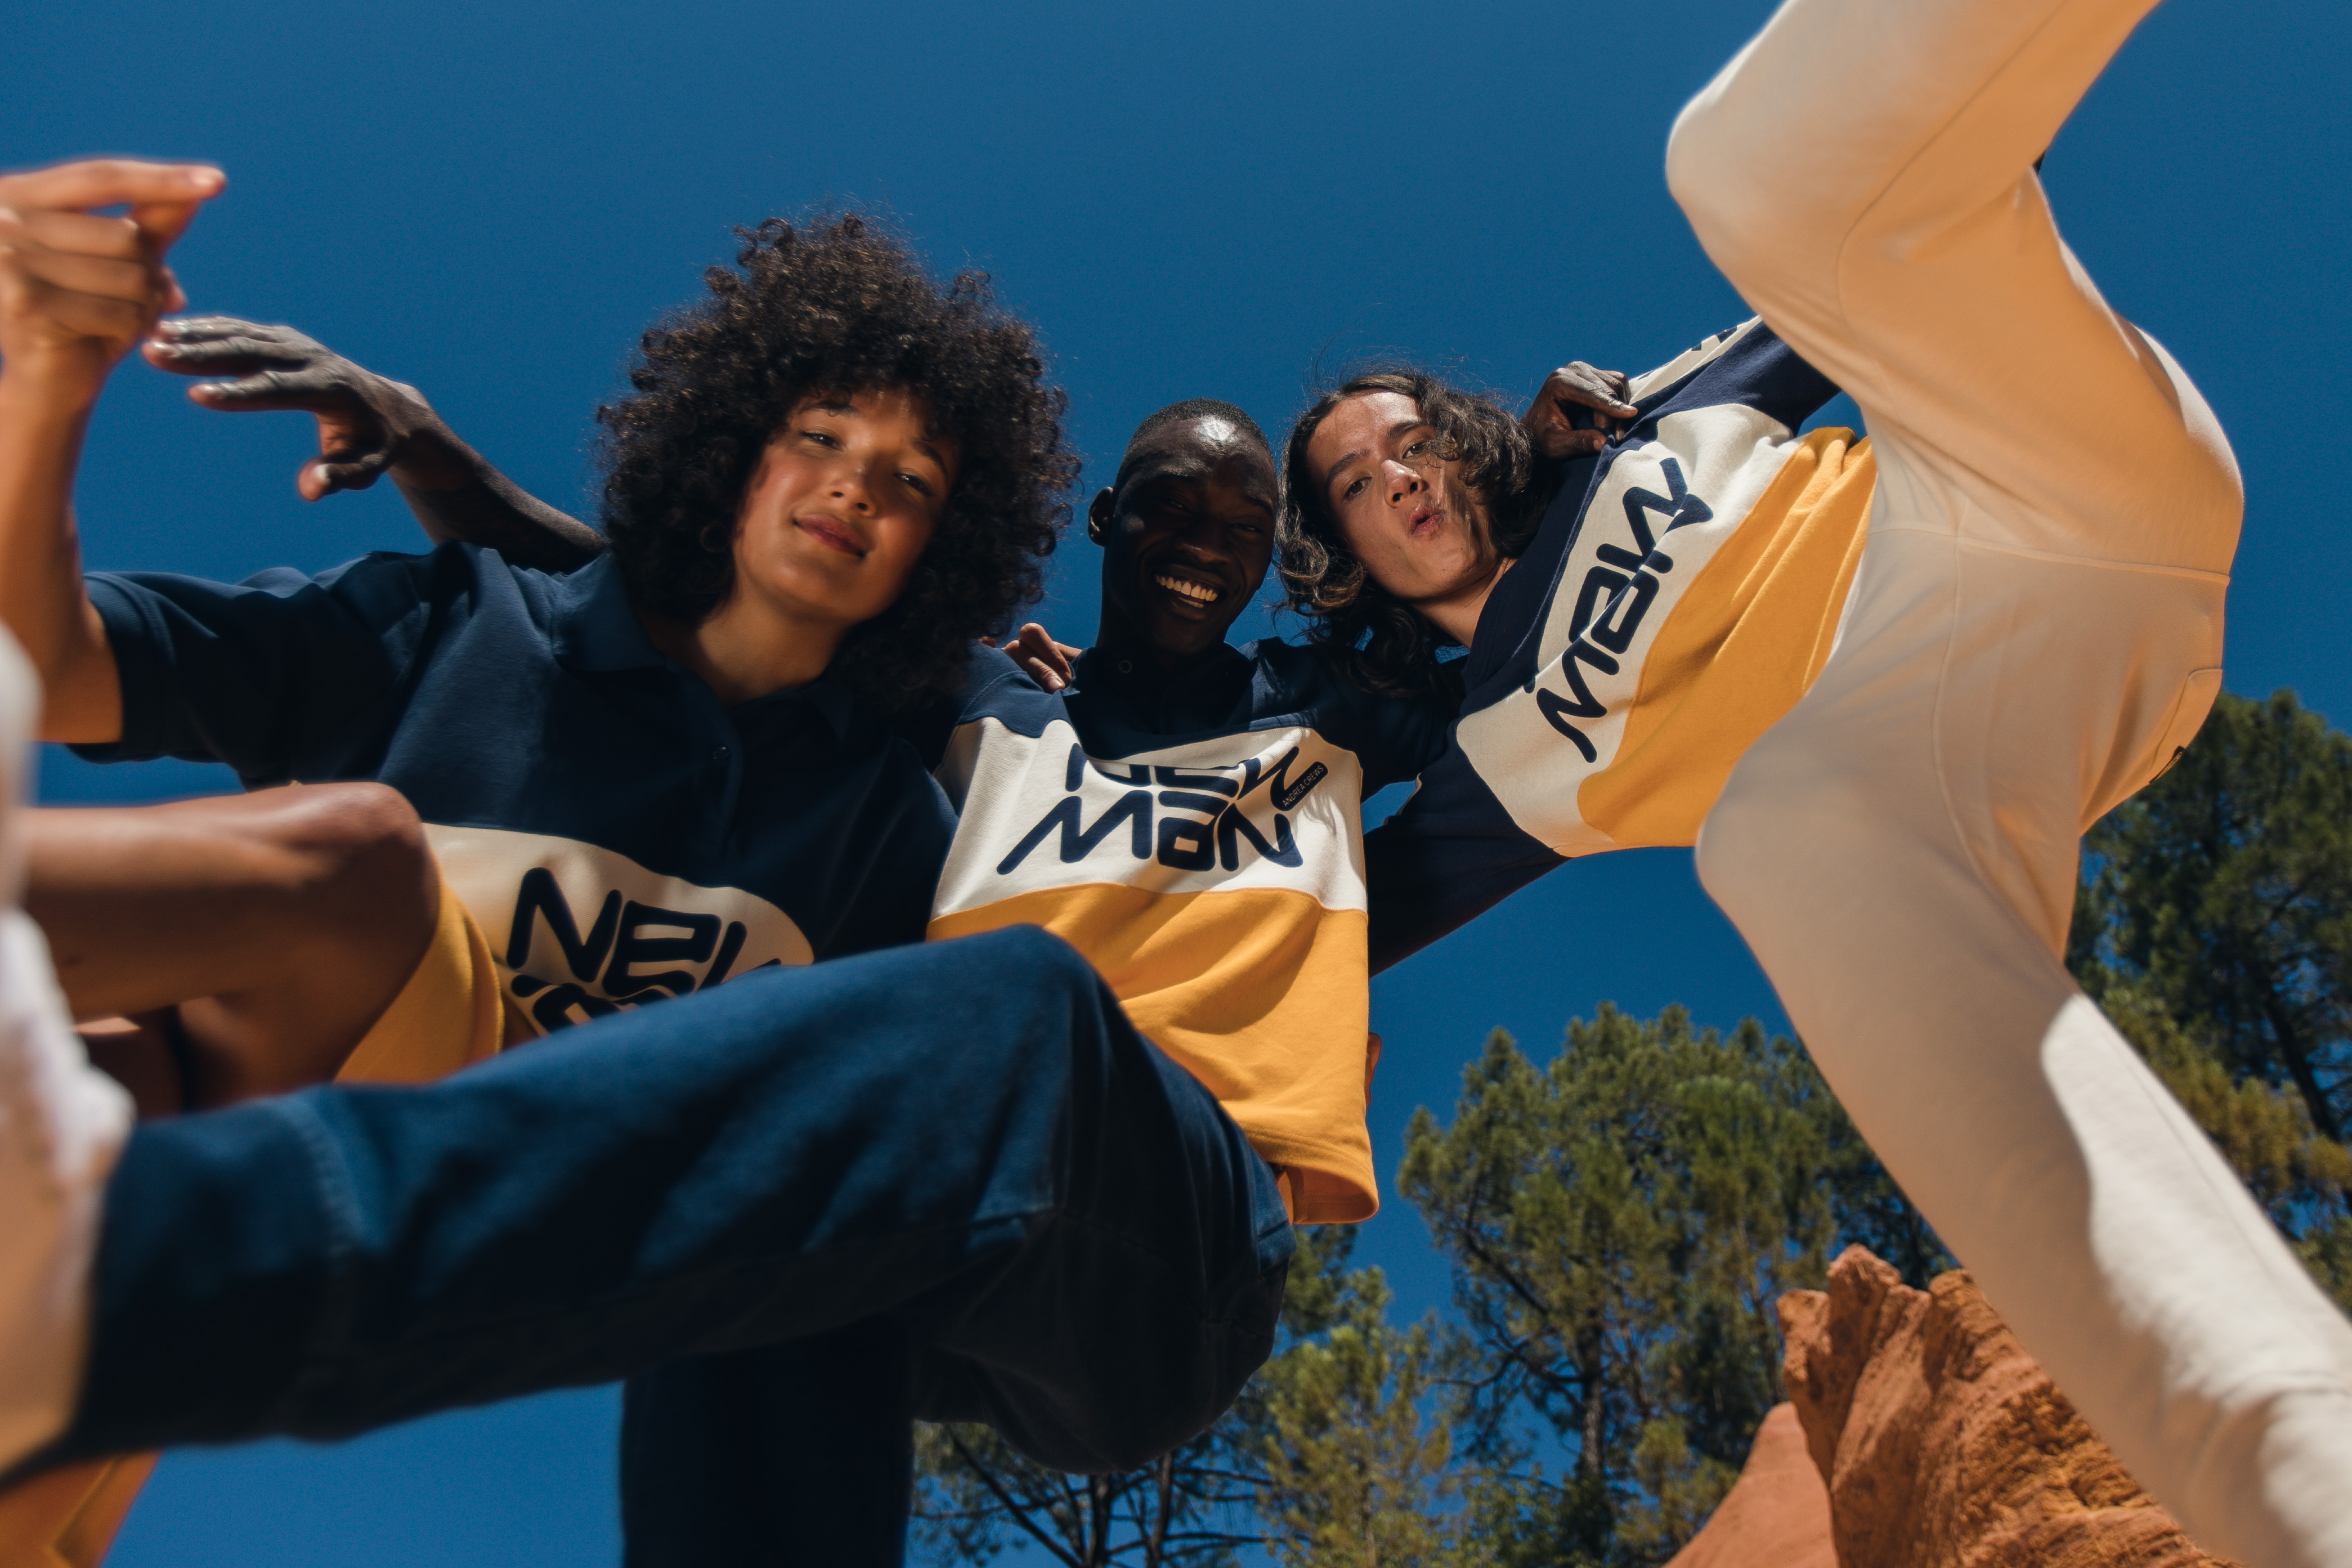 Andrea Crews x New Man come Together for a Collection